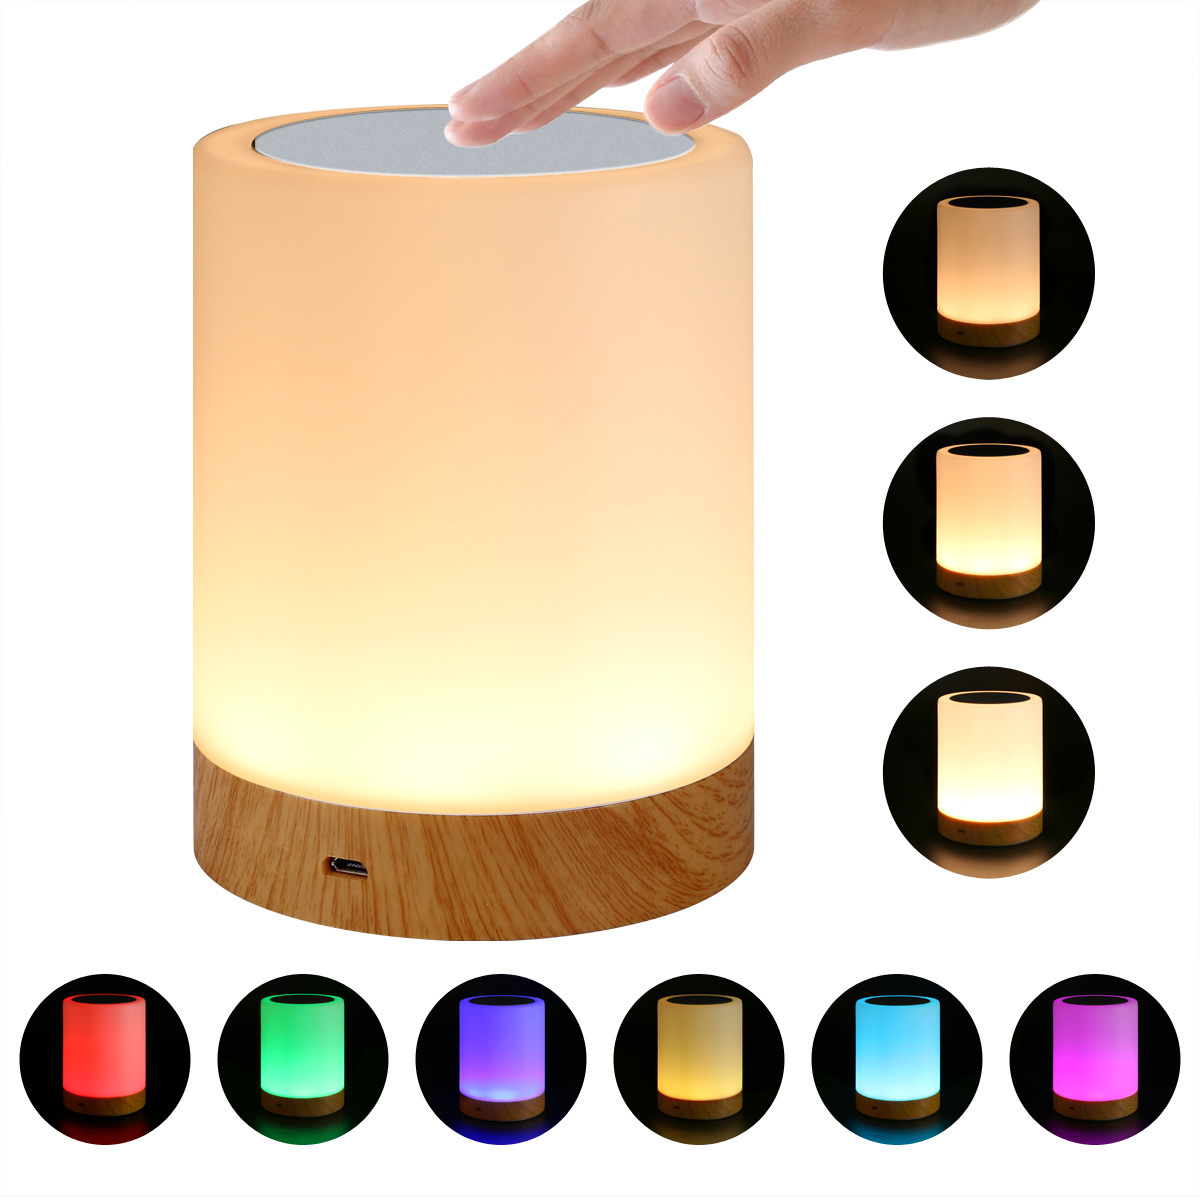 LED New Style Seven Color Creative Wood Grain Charging Small Night Lamp Bedside Light Table Lamps Touch Pat Ambience Lighting